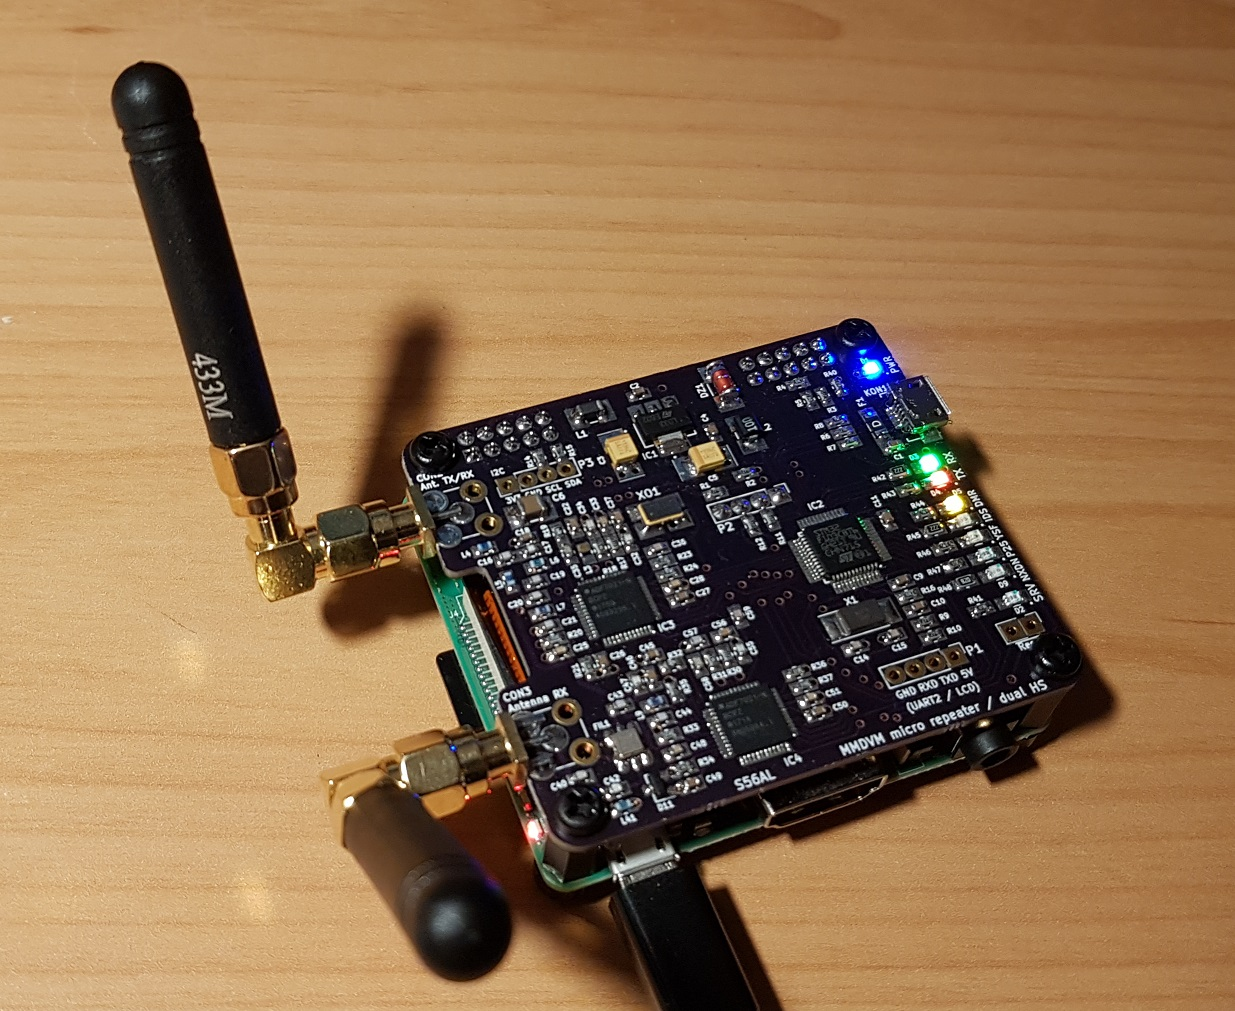 MMDVM MicroRepeater / Dual HotSpot board for RPi by Aleksander Stare